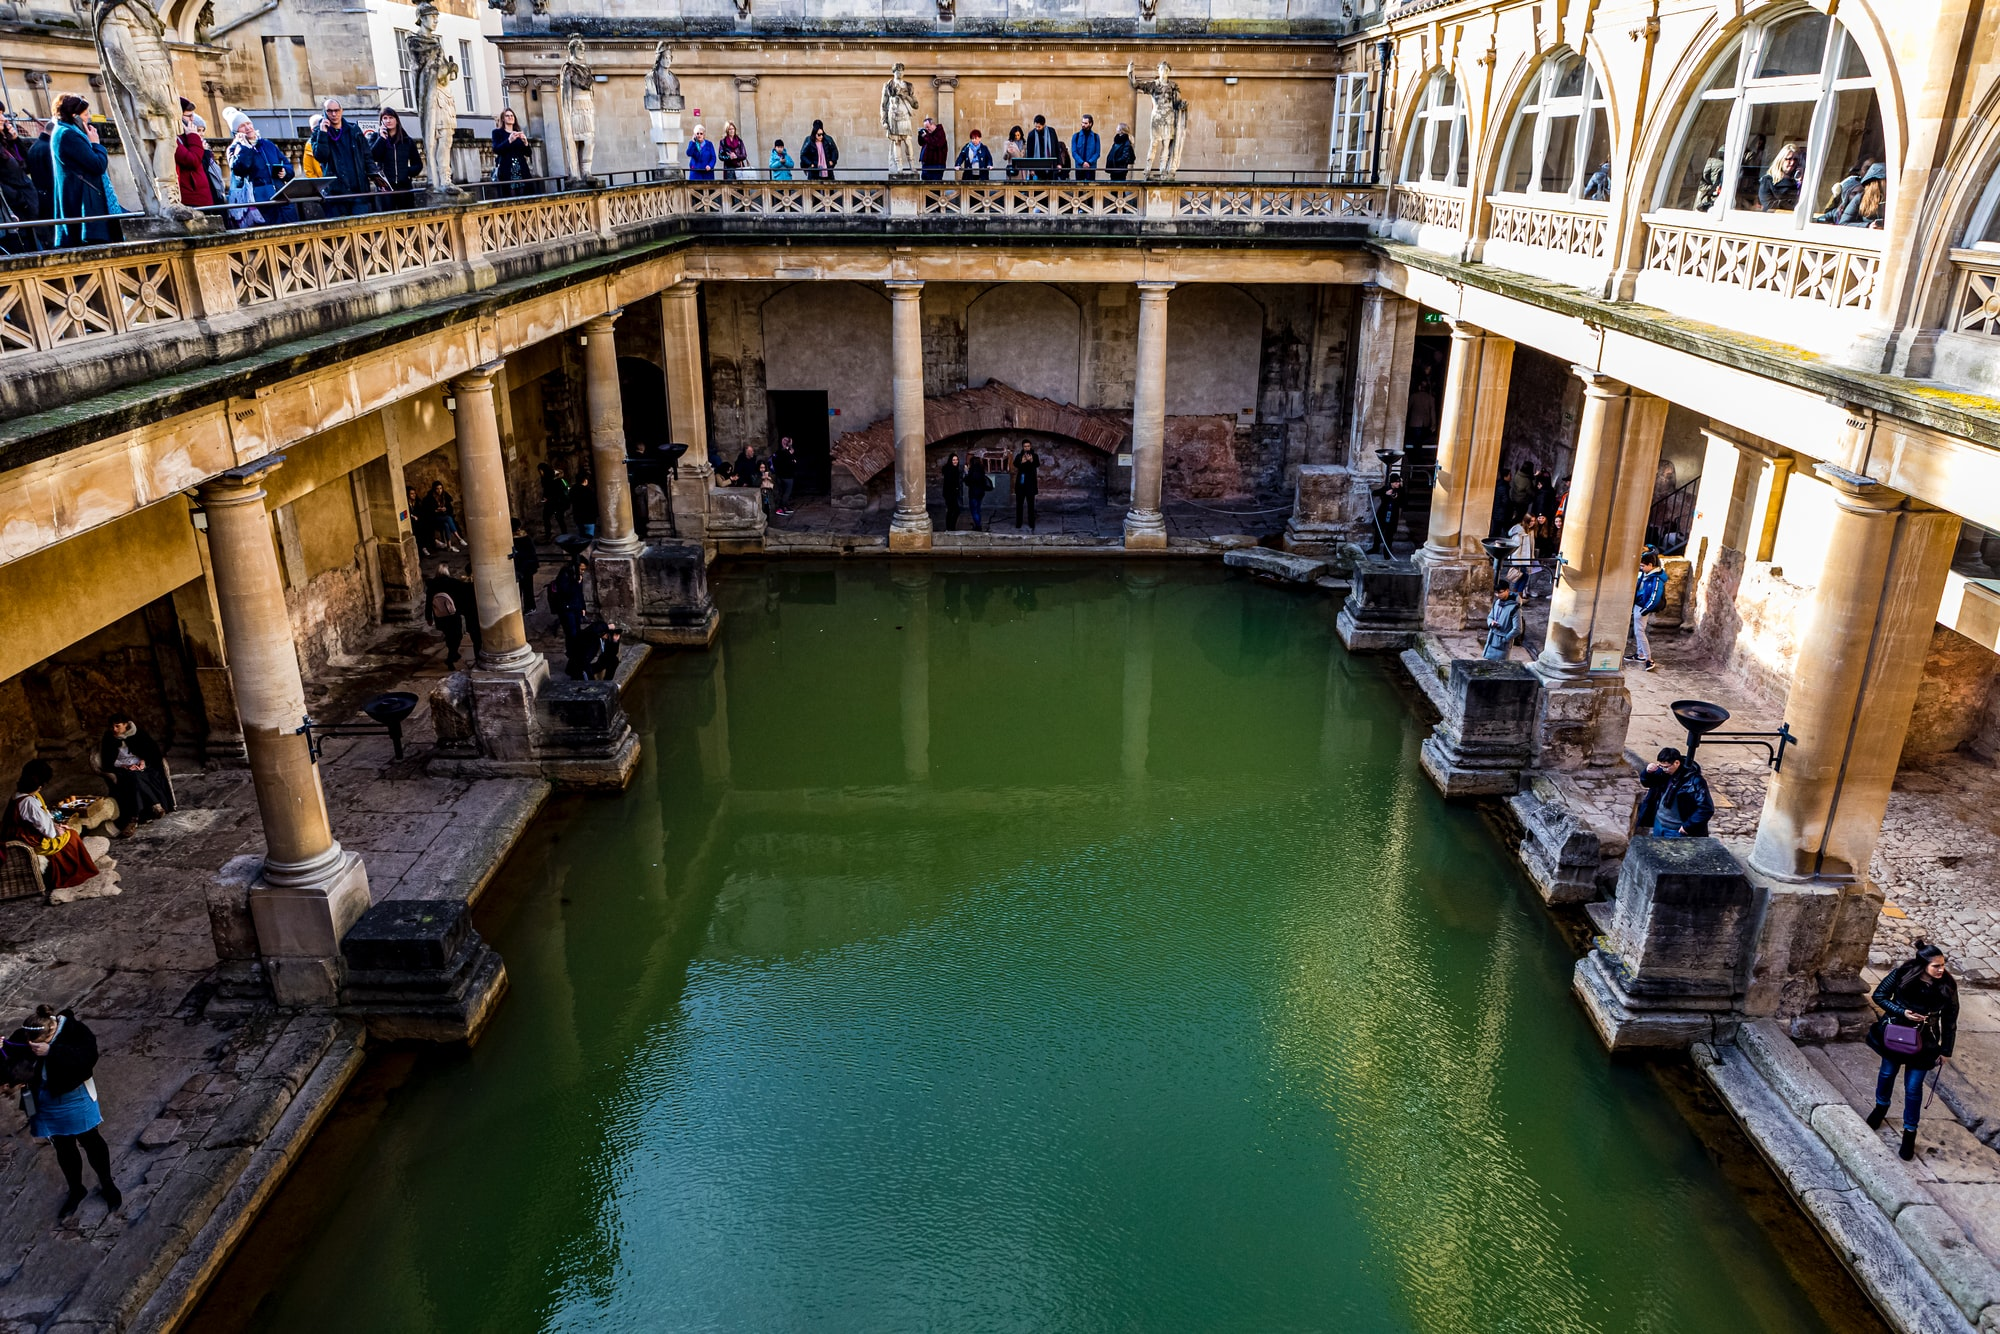 Antique historic landmark Roman Baths in Bath England UK, February 2020.